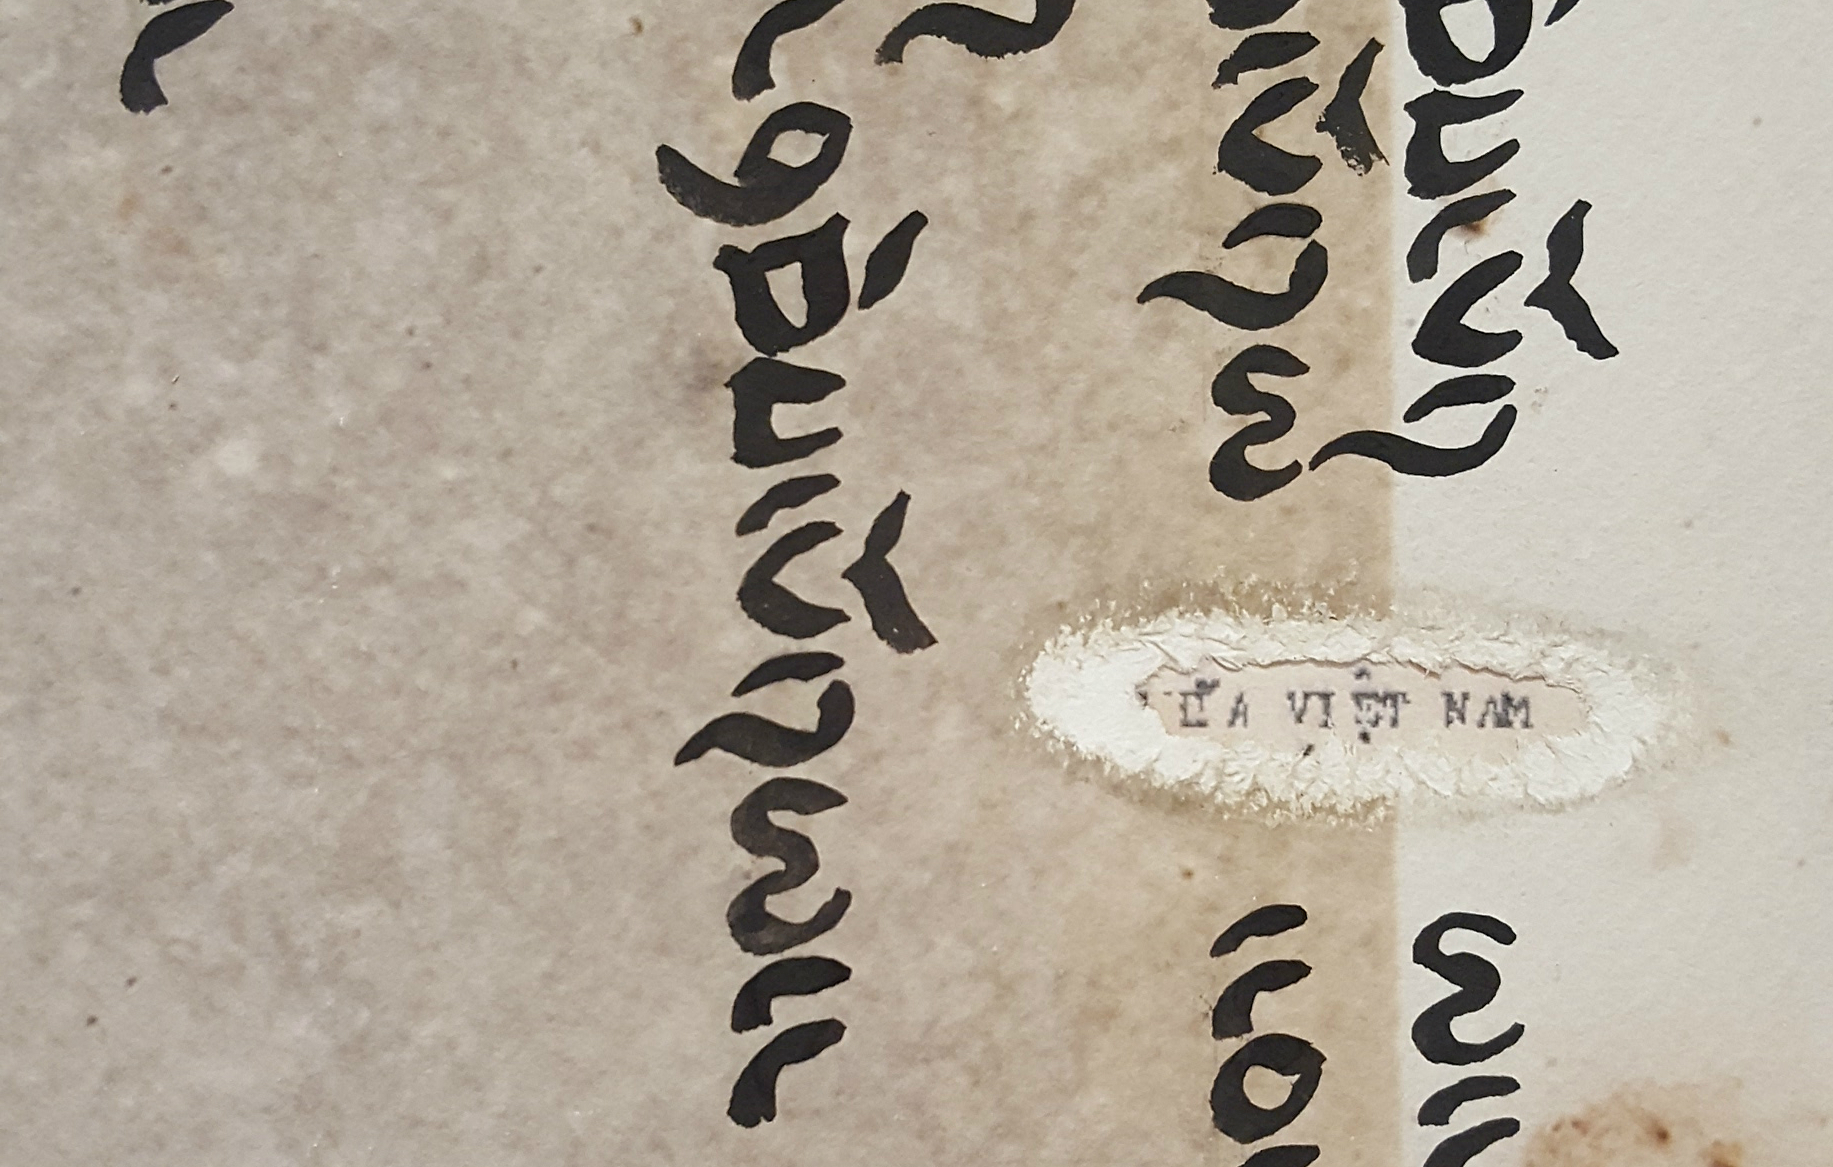 """Detail of """"VIỆT NAM """"  as seen on Bác  Phơưl's release papers from the re-education camp"""